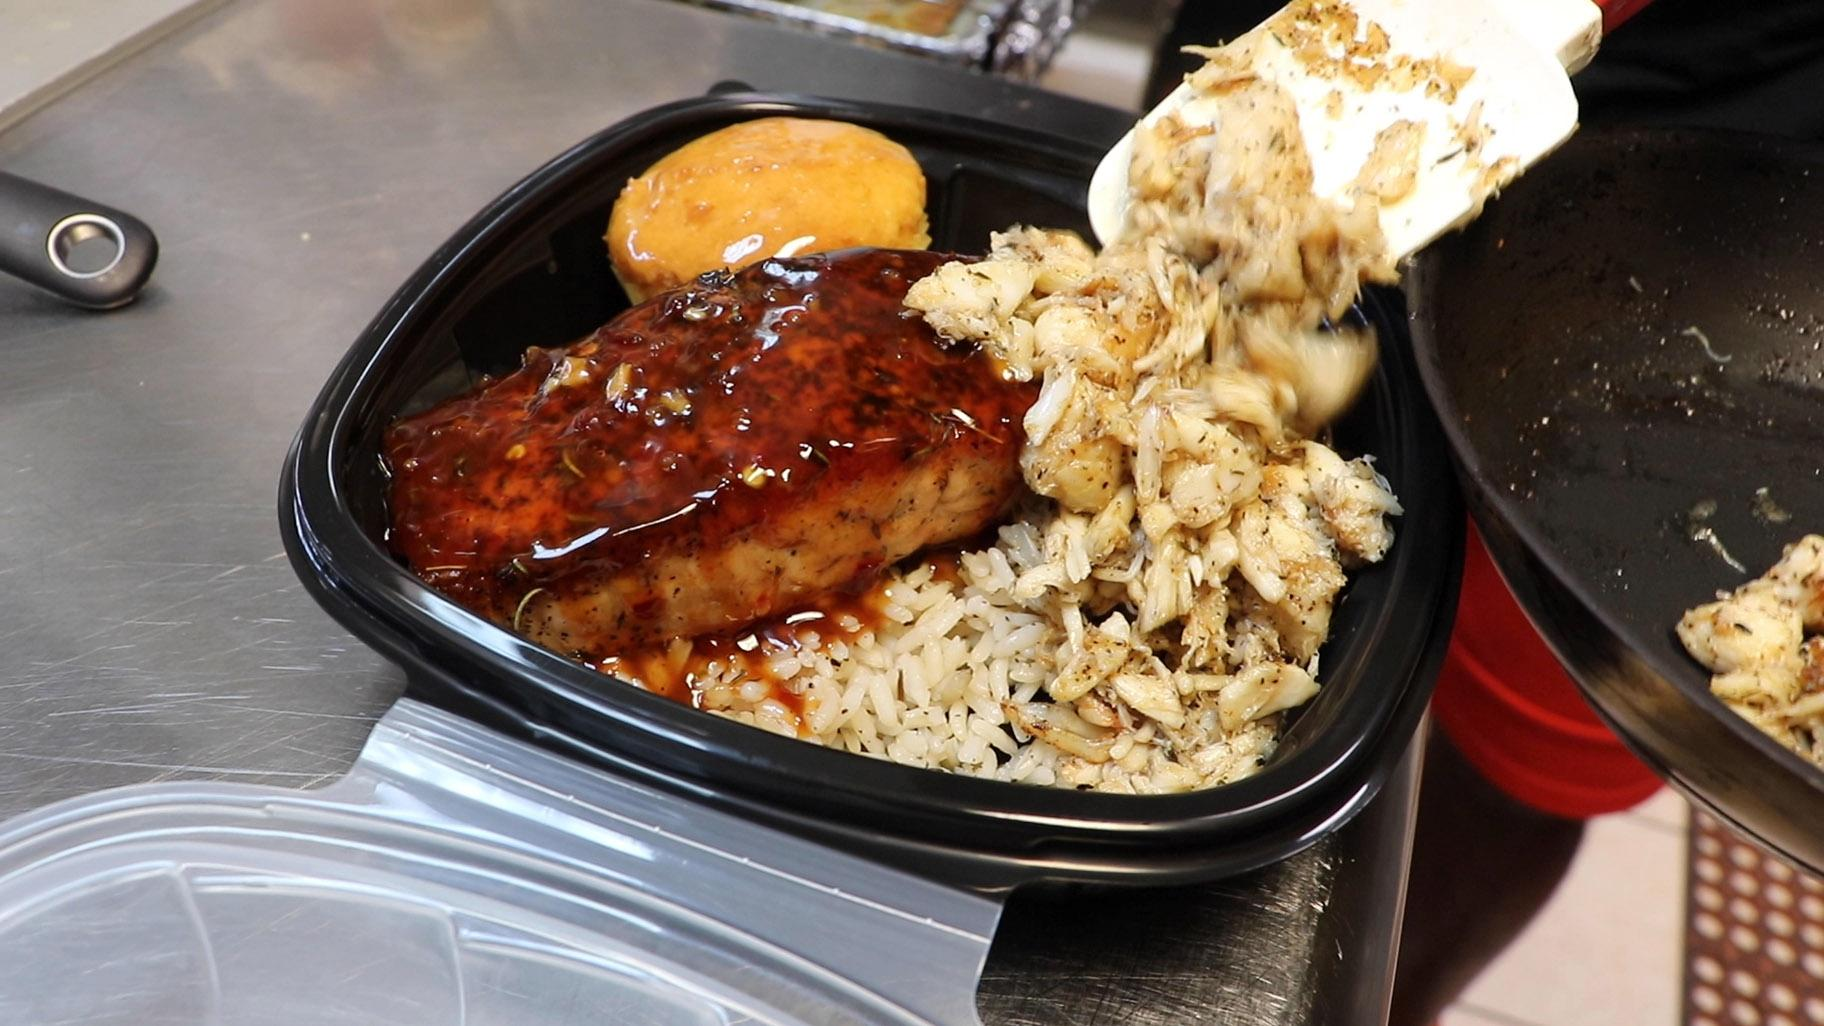 Creole-buttered lump crab meat and pan-seared salmon with sweet chili sauce is placed in a to-go box at Cleo's Southern Cuisine in Chicago's Bronzeville neighborhood on June 27, 2020. (Evan Garcia / WTTW News)